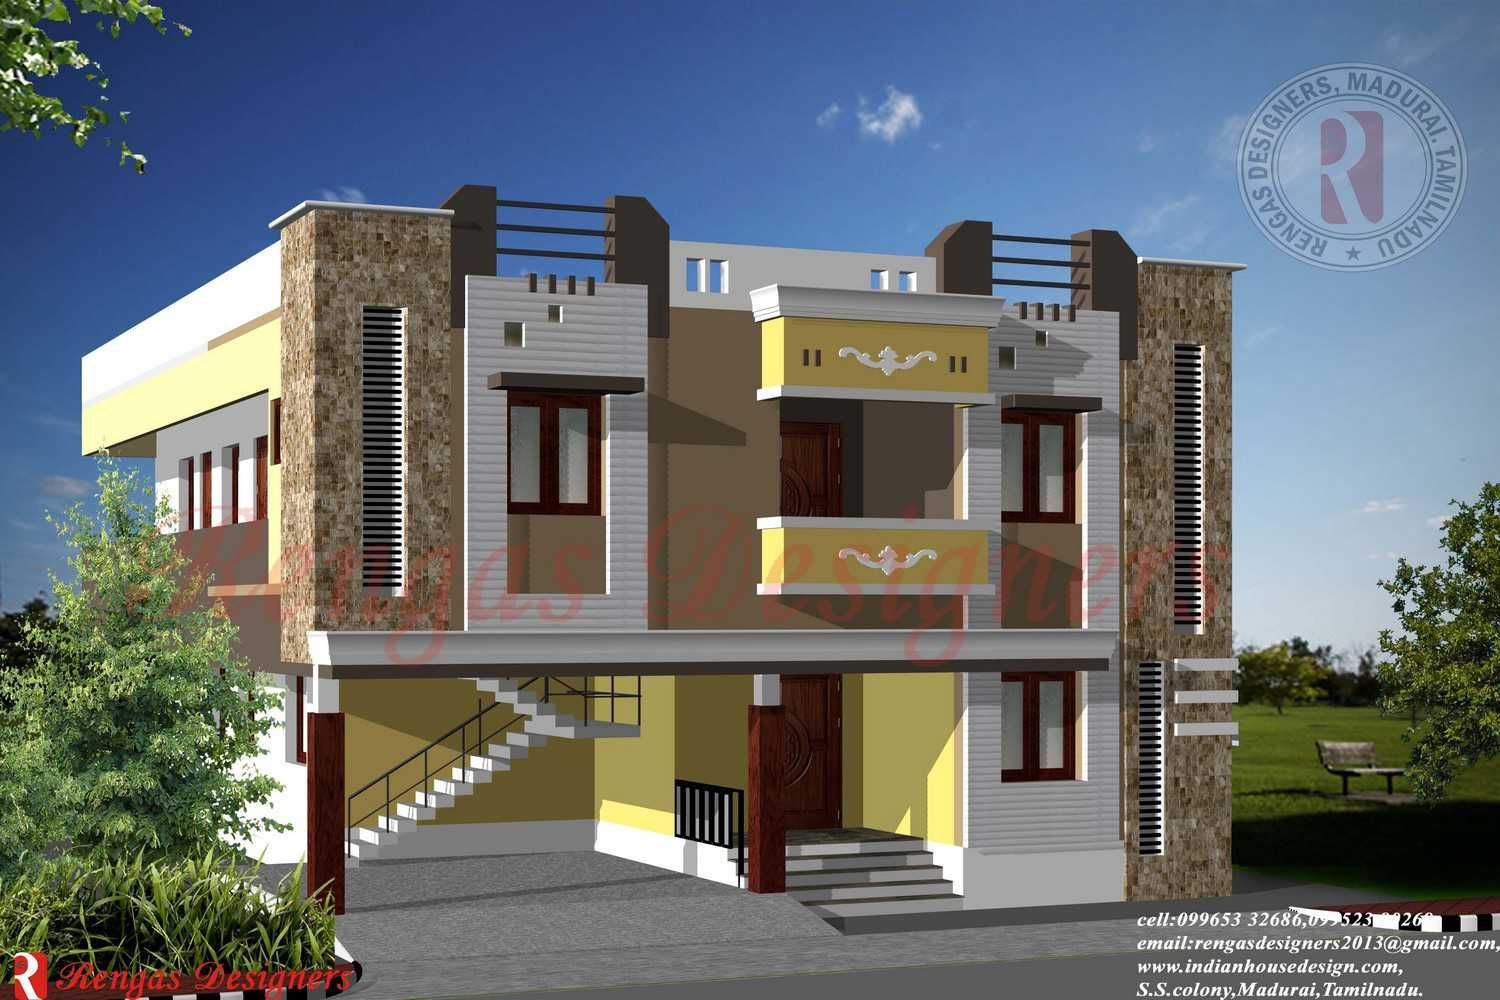 Parapet wall designs google search residence Indian house structure design